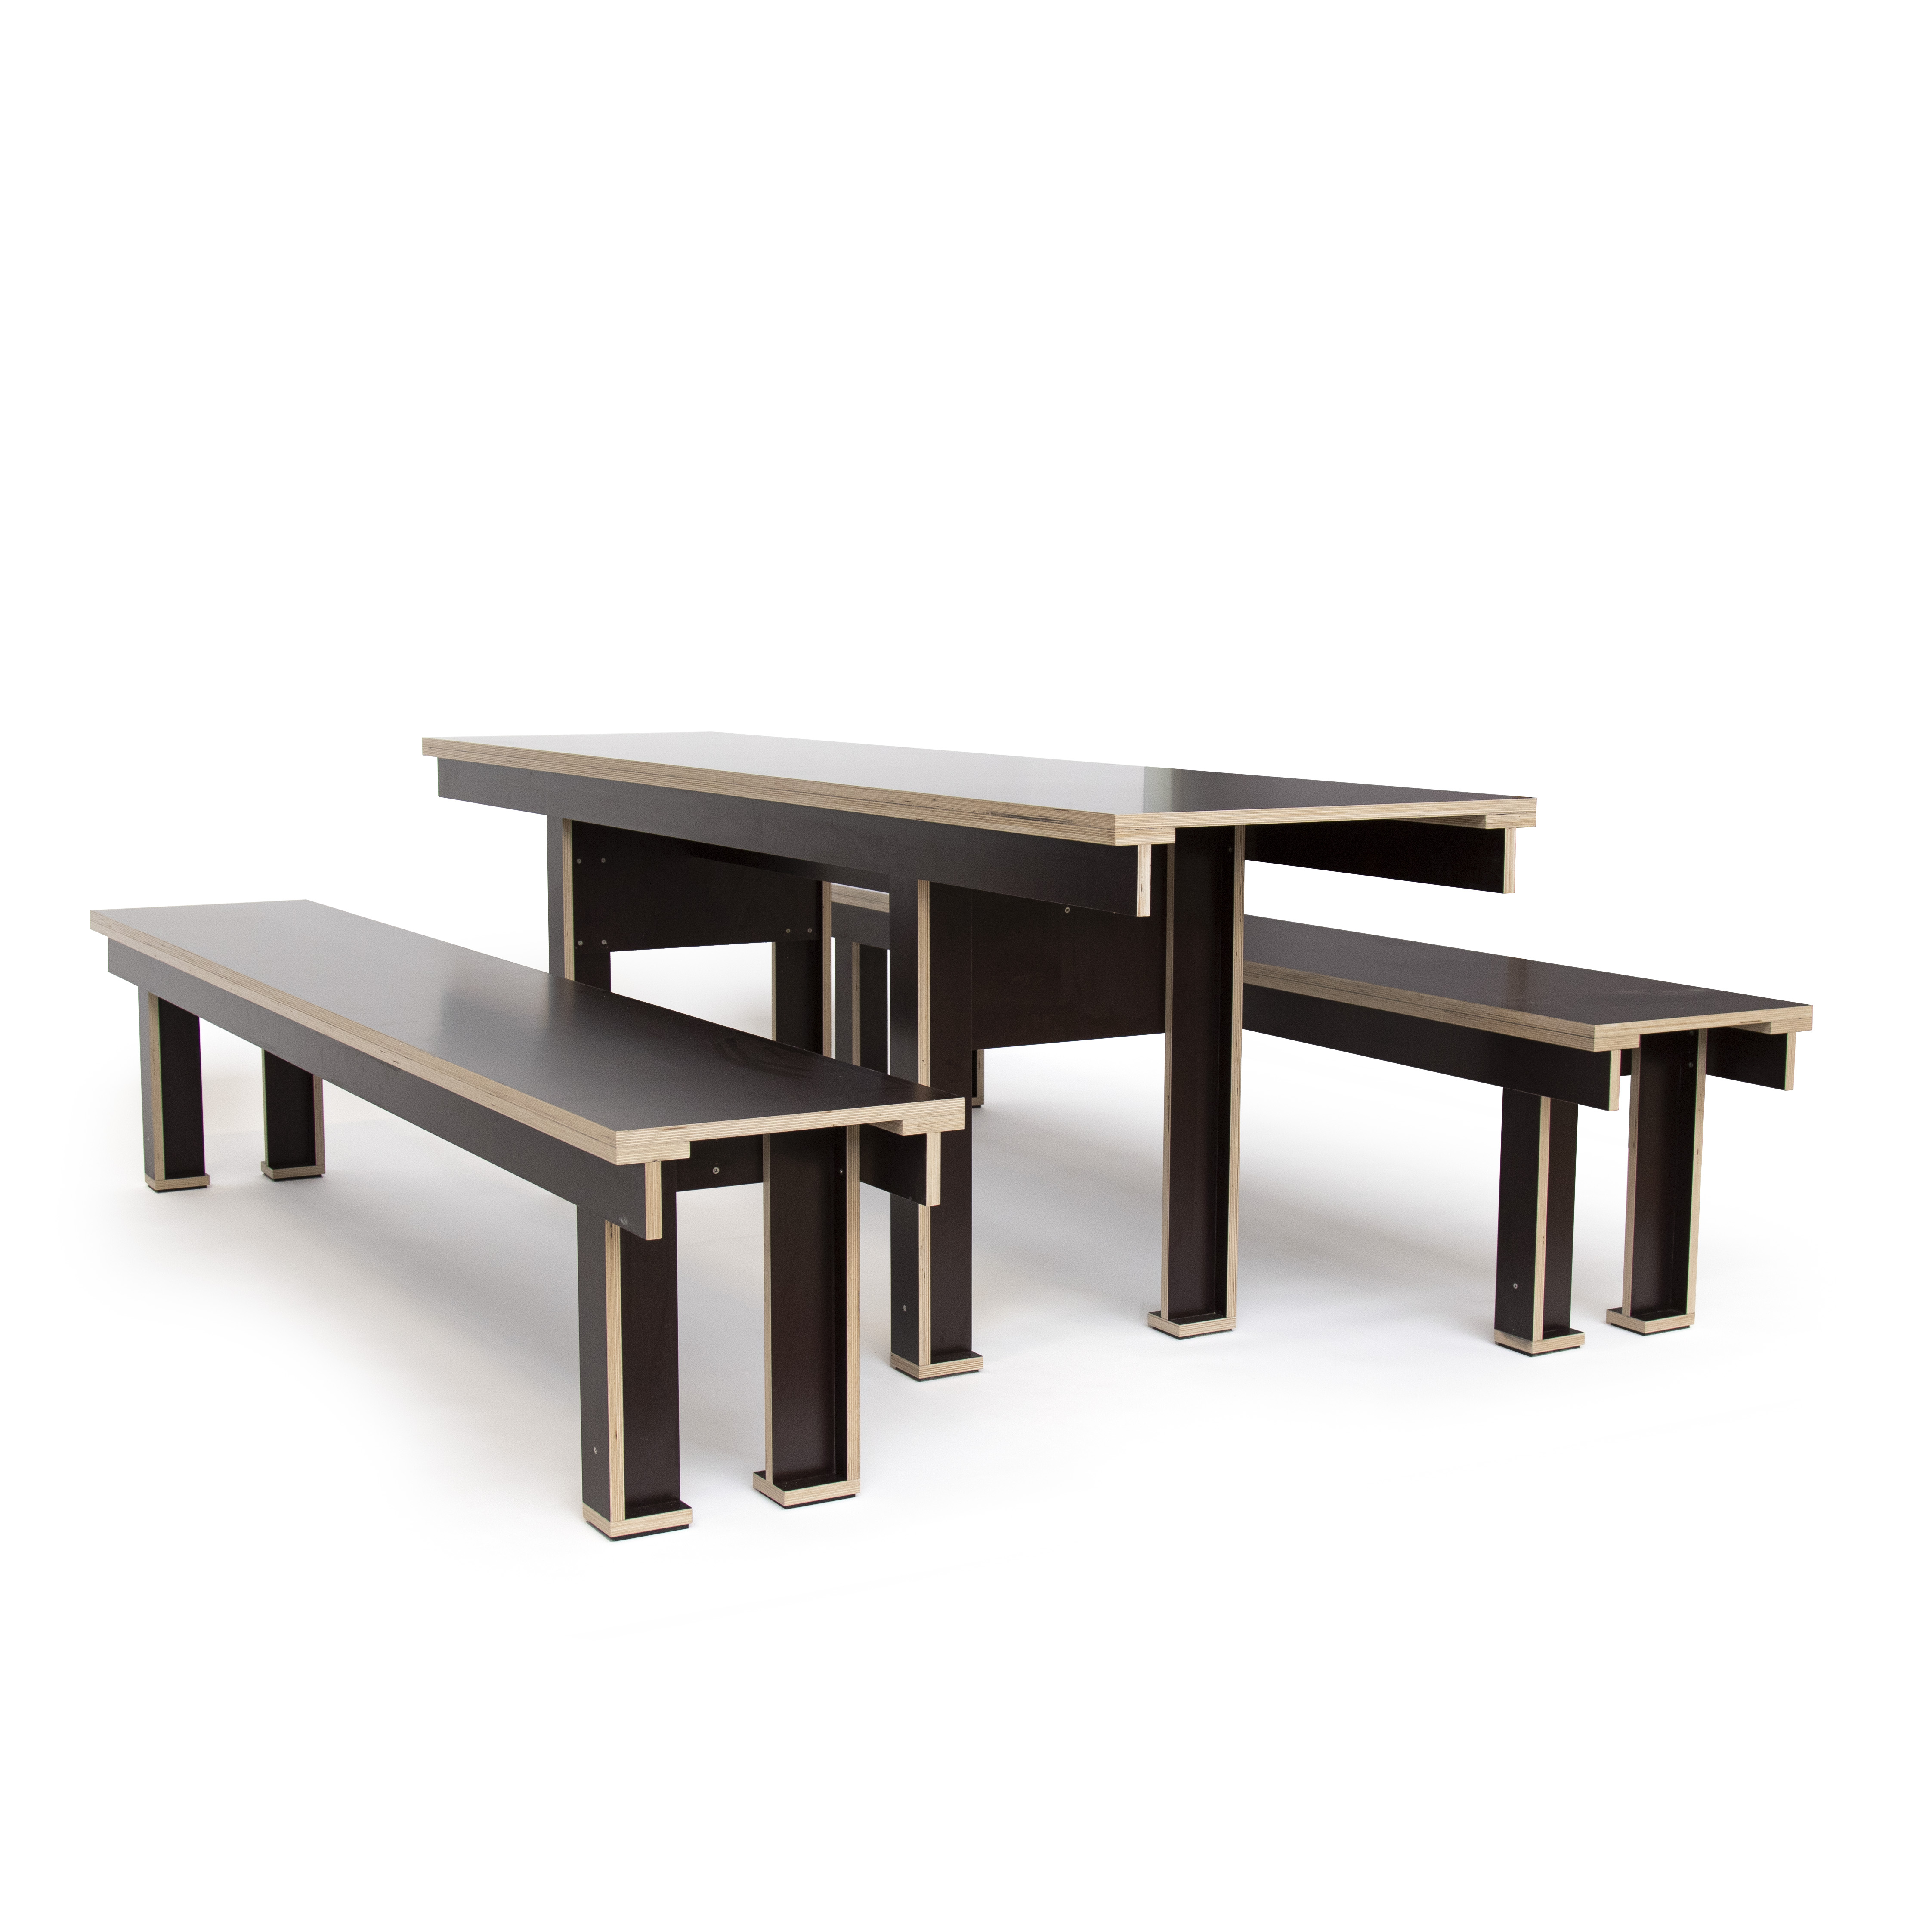 07_Plywood_Table-and-Benches-perspective-thumbnail